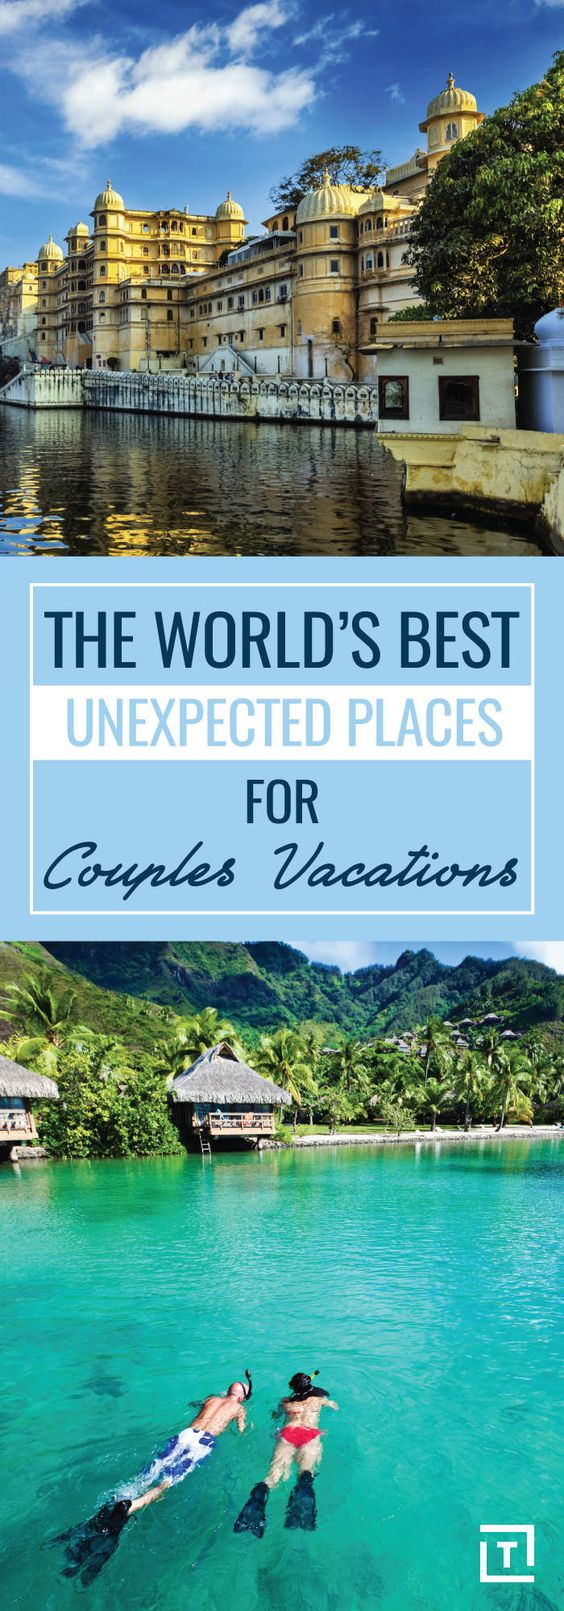 The world 39 s best unexpected places for couples vacations for Top vacation destinations for couples